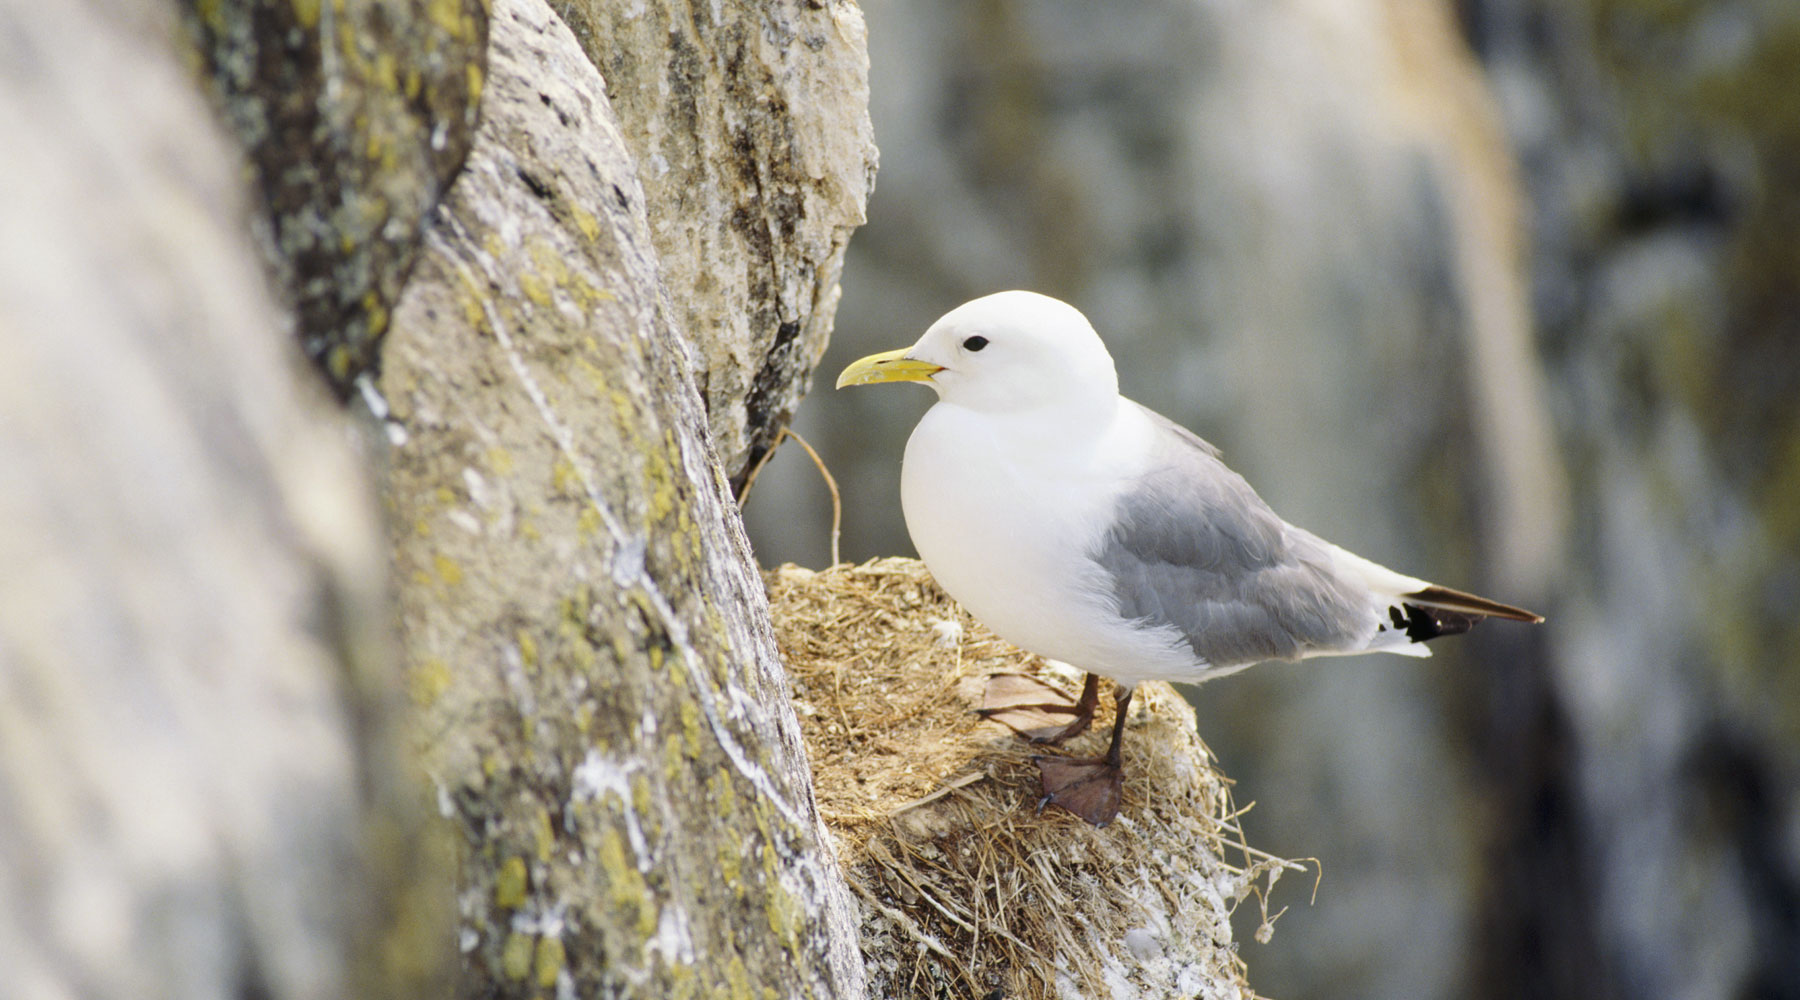 Joe Cornish National Trust Images | Kittiwake